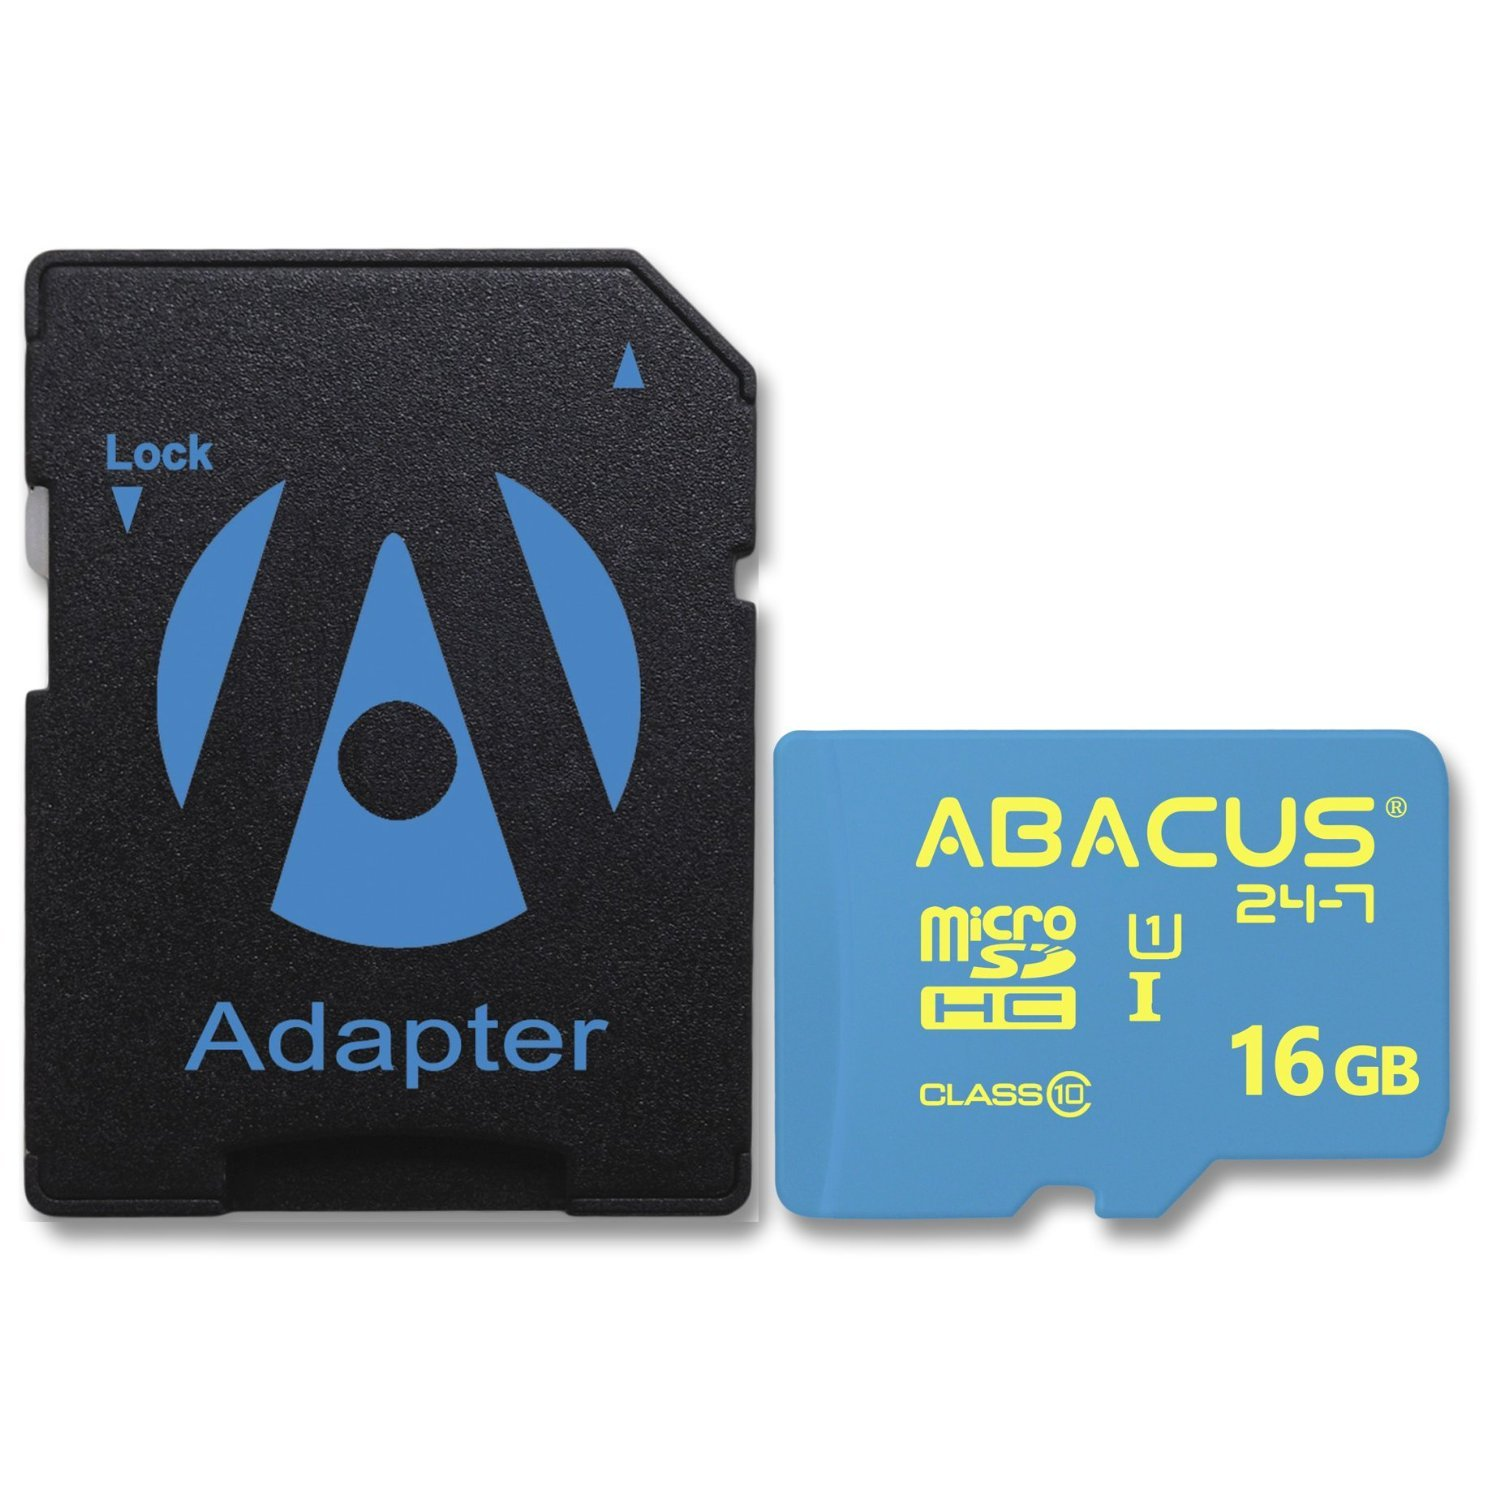 Abacus24-7 16GB micro SD Memory Card for LG Stylo 2 V, K10, K3, K7, K8 V, Grace, L90, Zone, Phoenix, Premier, Risio, Rebel, Tribute Dynasty, X Charge, X Power, X Venture, G Vista, Volt 2